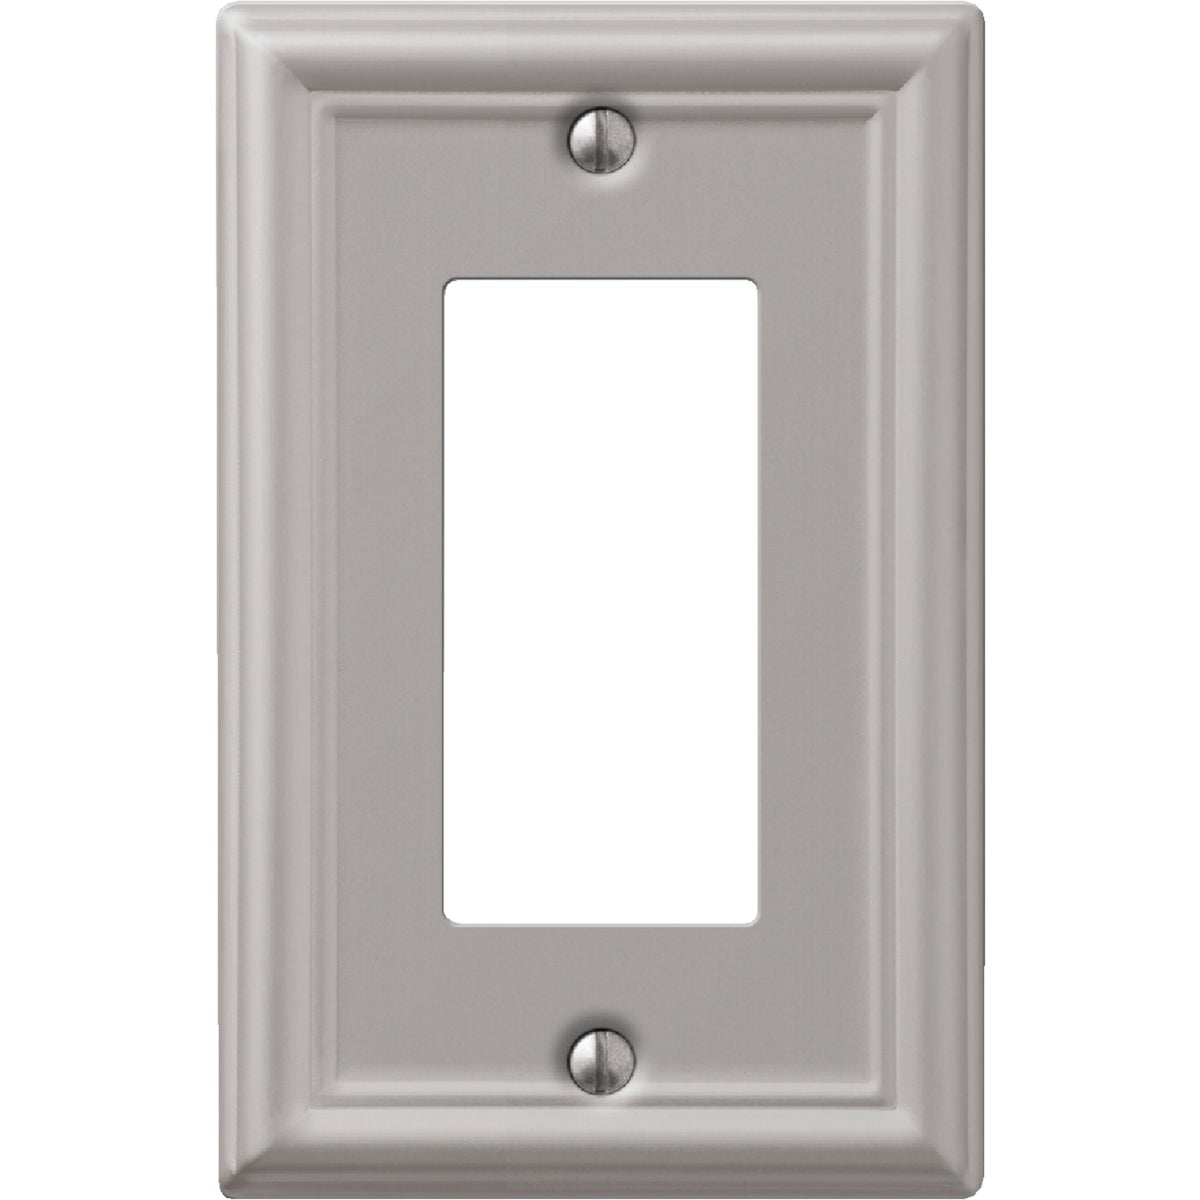 1 RKR BN WALLPLATE - 9LBN117 by Jackson Deerfield Mf